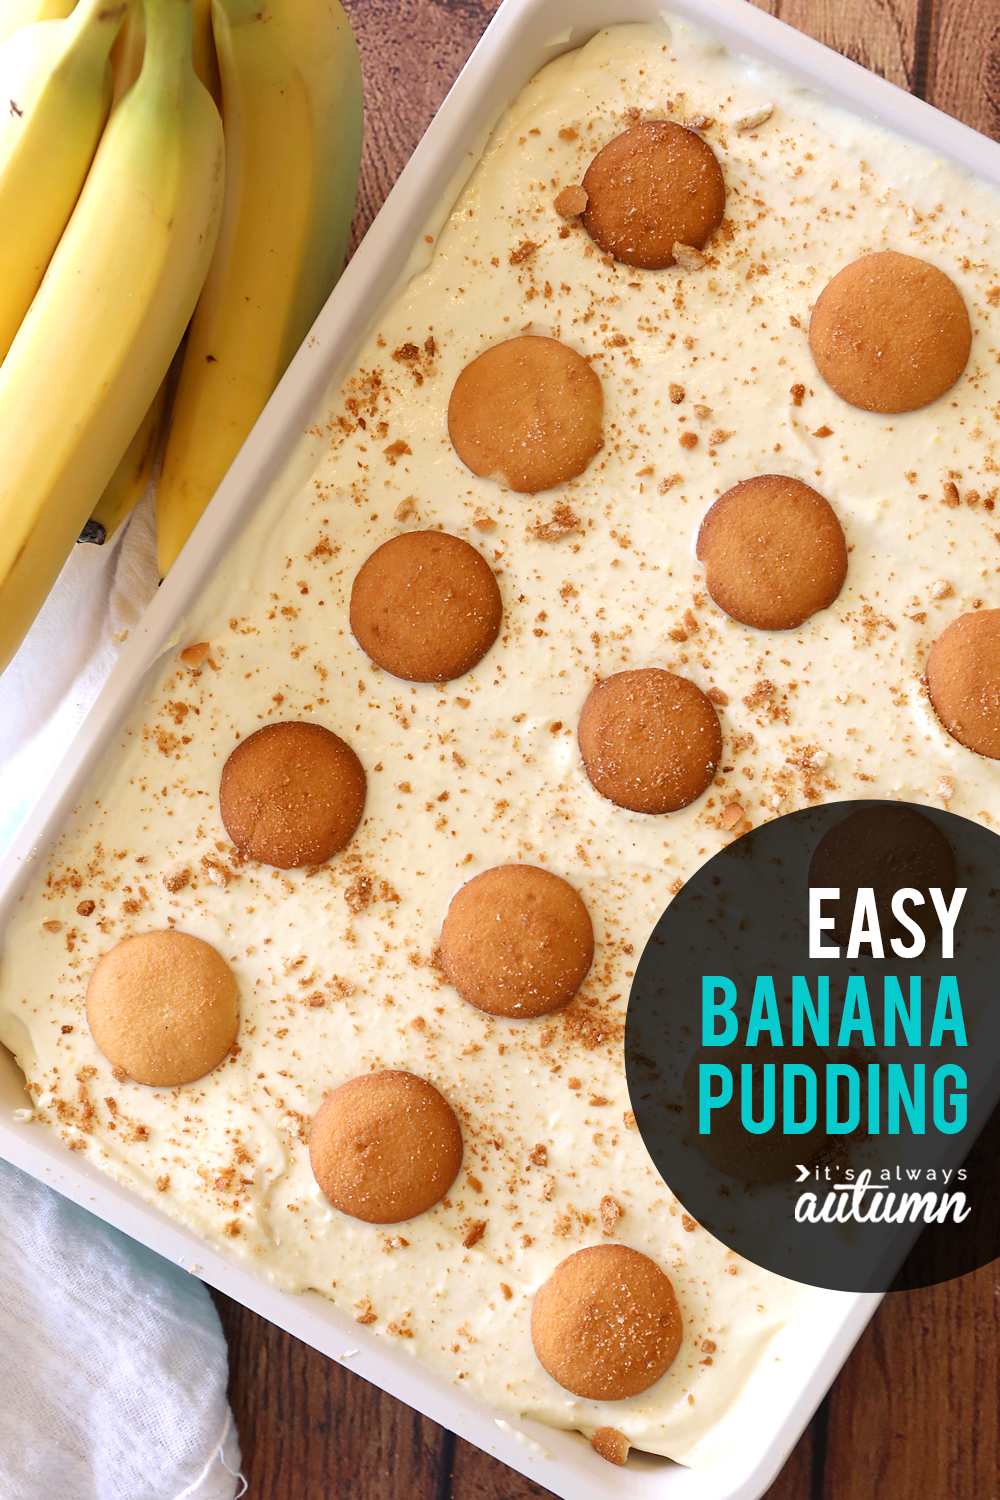 This is THE BEST easy banana pudding recipe - it doesn't take long to make and everyone loves it!